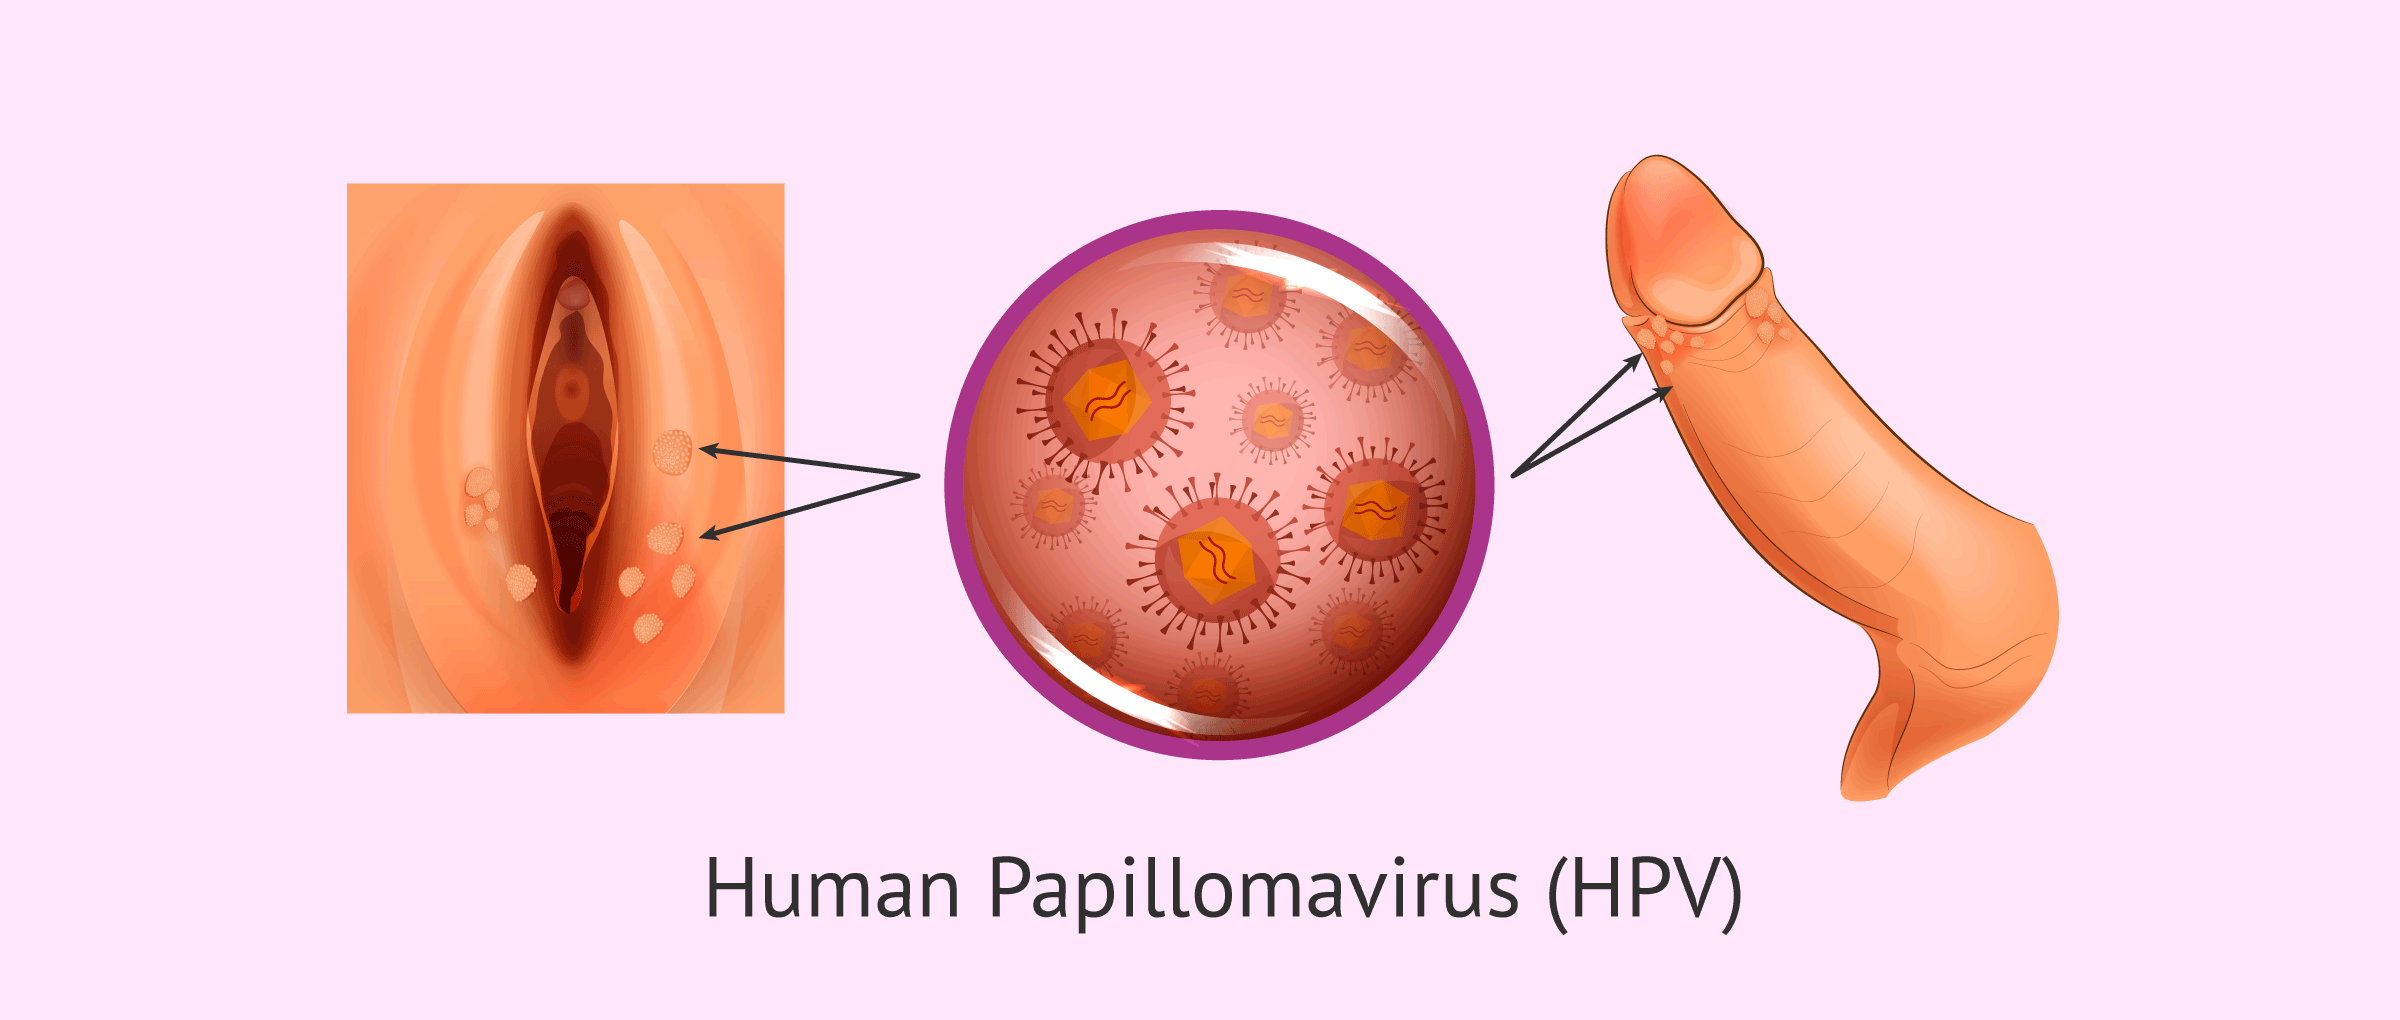 Human papillomavirus symptoms female, Define human papillomavirus in medical term